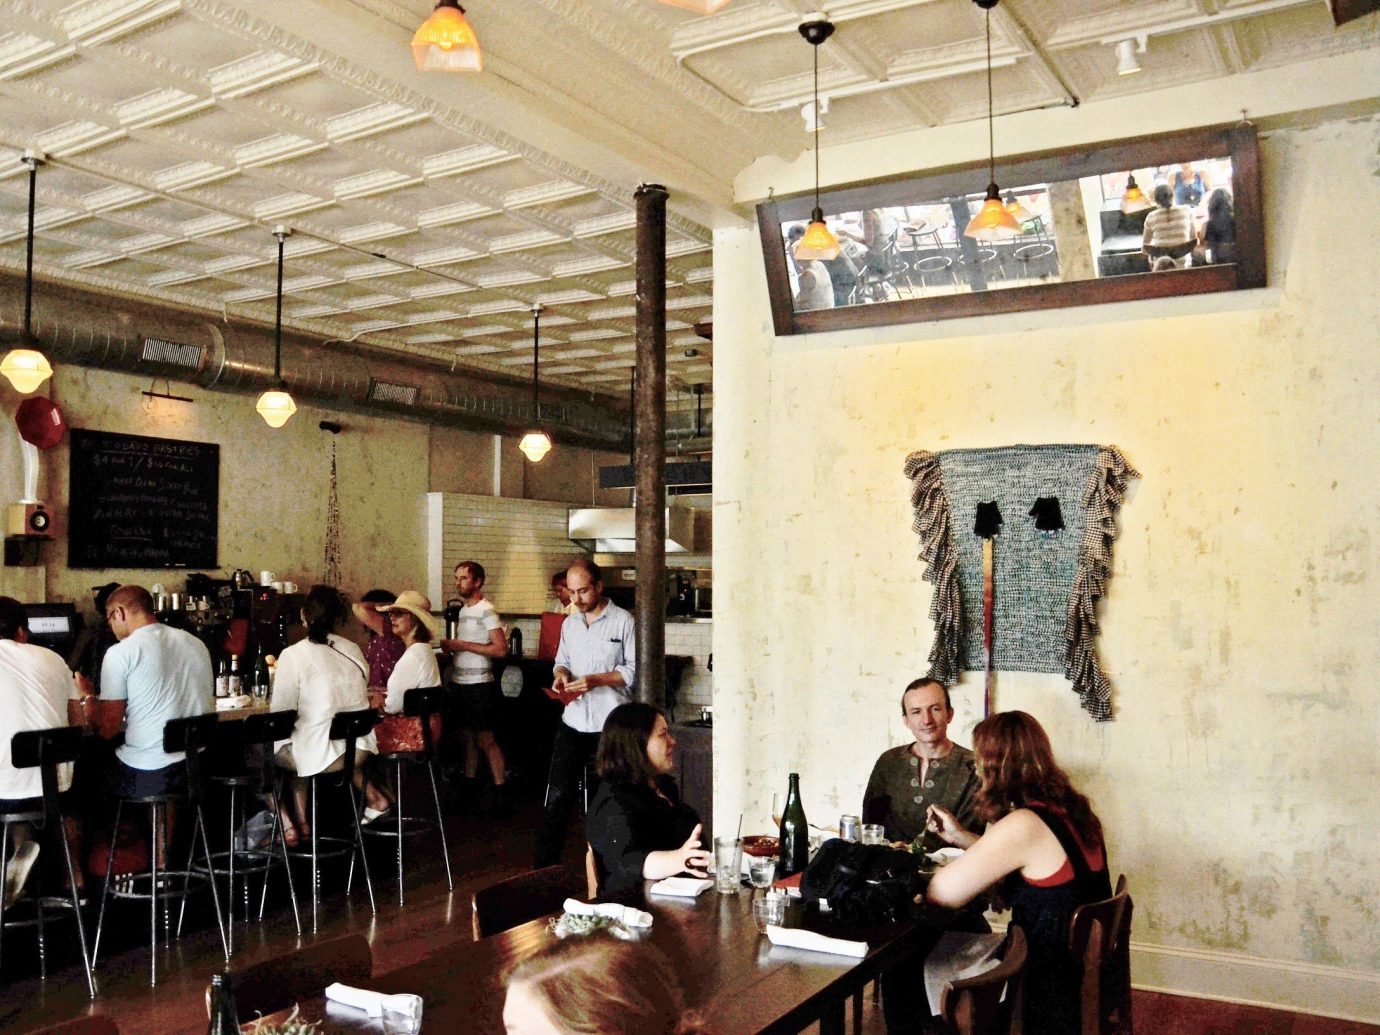 Food + Drink indoor wall person ceiling restaurant group meal several dining room